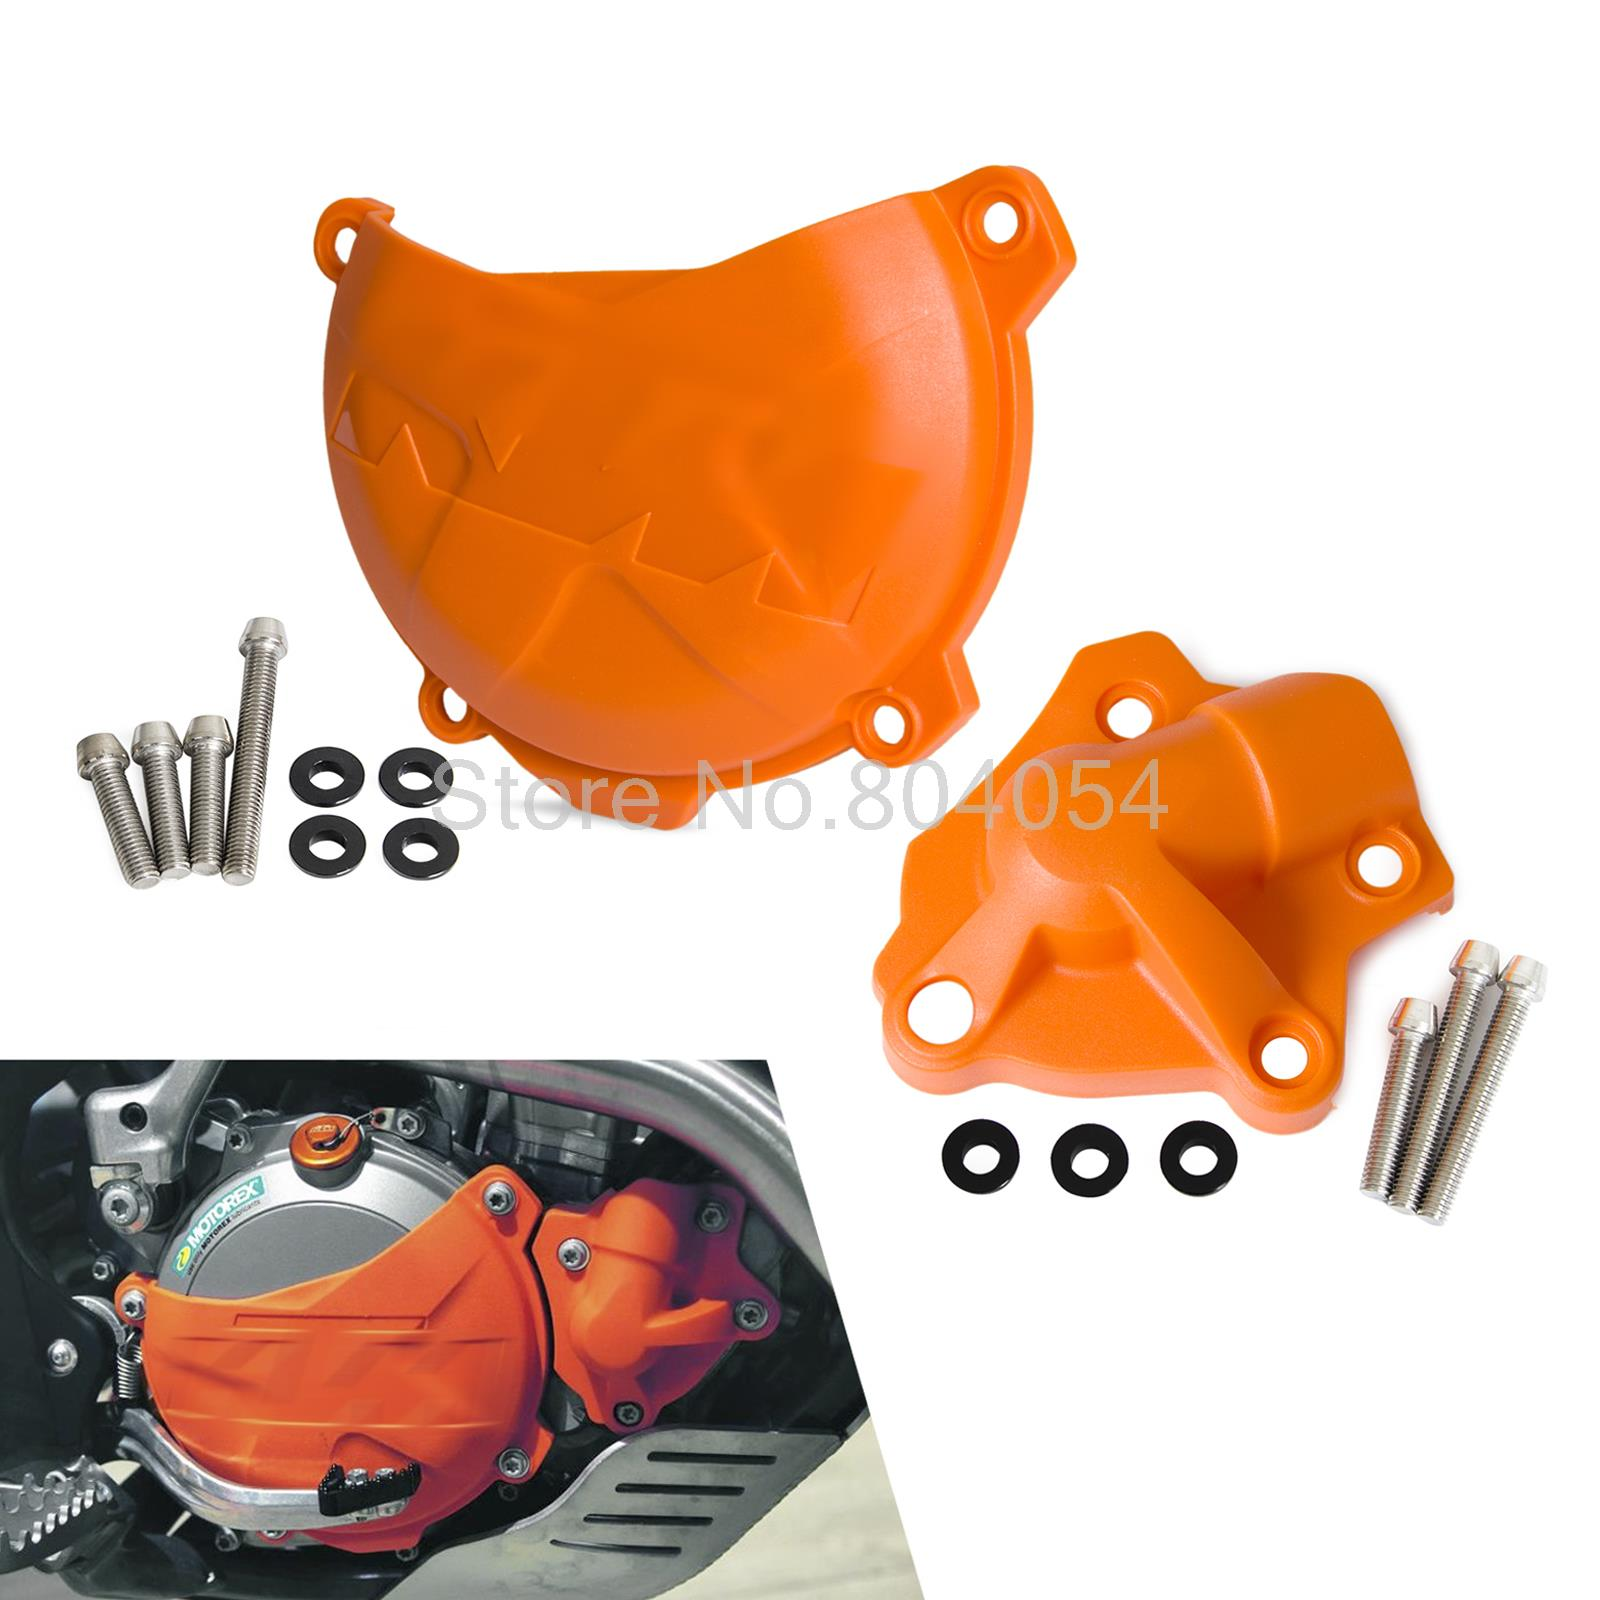 ФОТО Clutch Cover Protection Cover Water Pump Cover Protector for KTM 350 XC-F 2013-2015